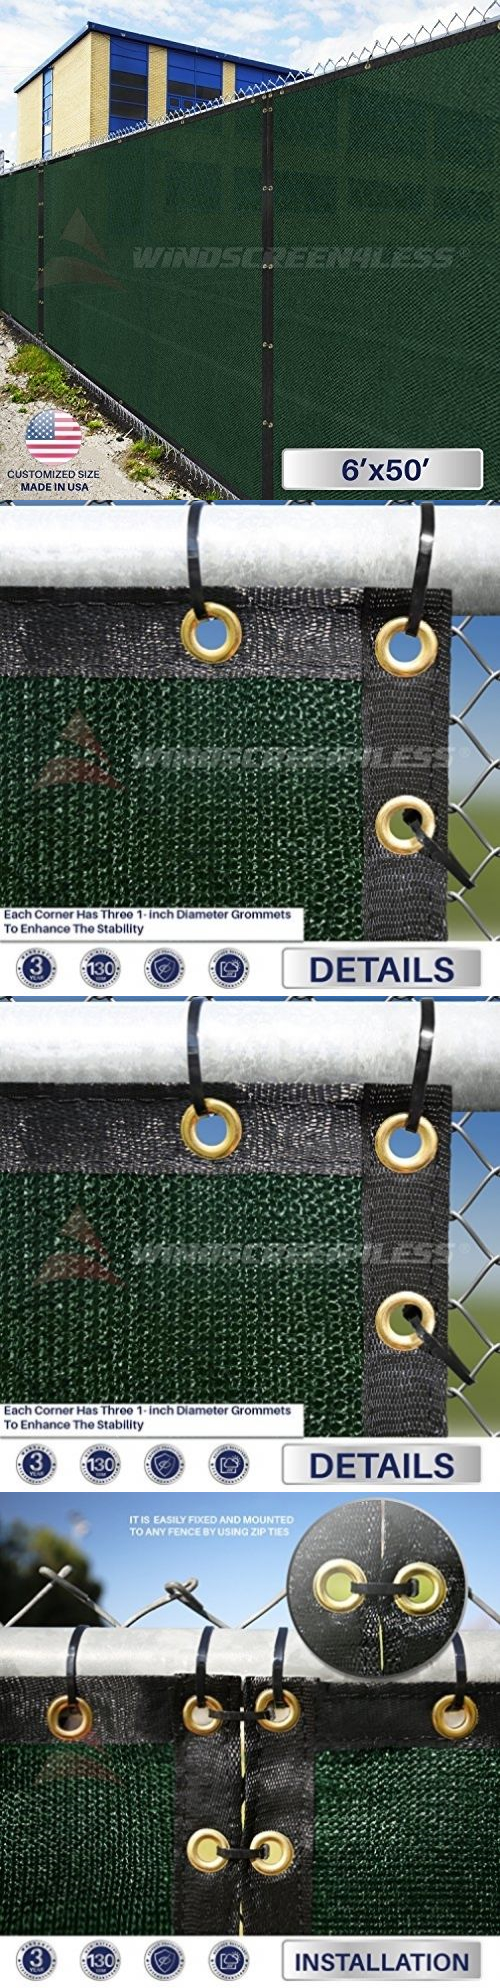 Privacy screen for chain link fence ebay - Privacy Screens Windscreens 180991 Chain Link Fence Privacy Screen 6x50 Heavy Duty Fabric Outdoor Panel